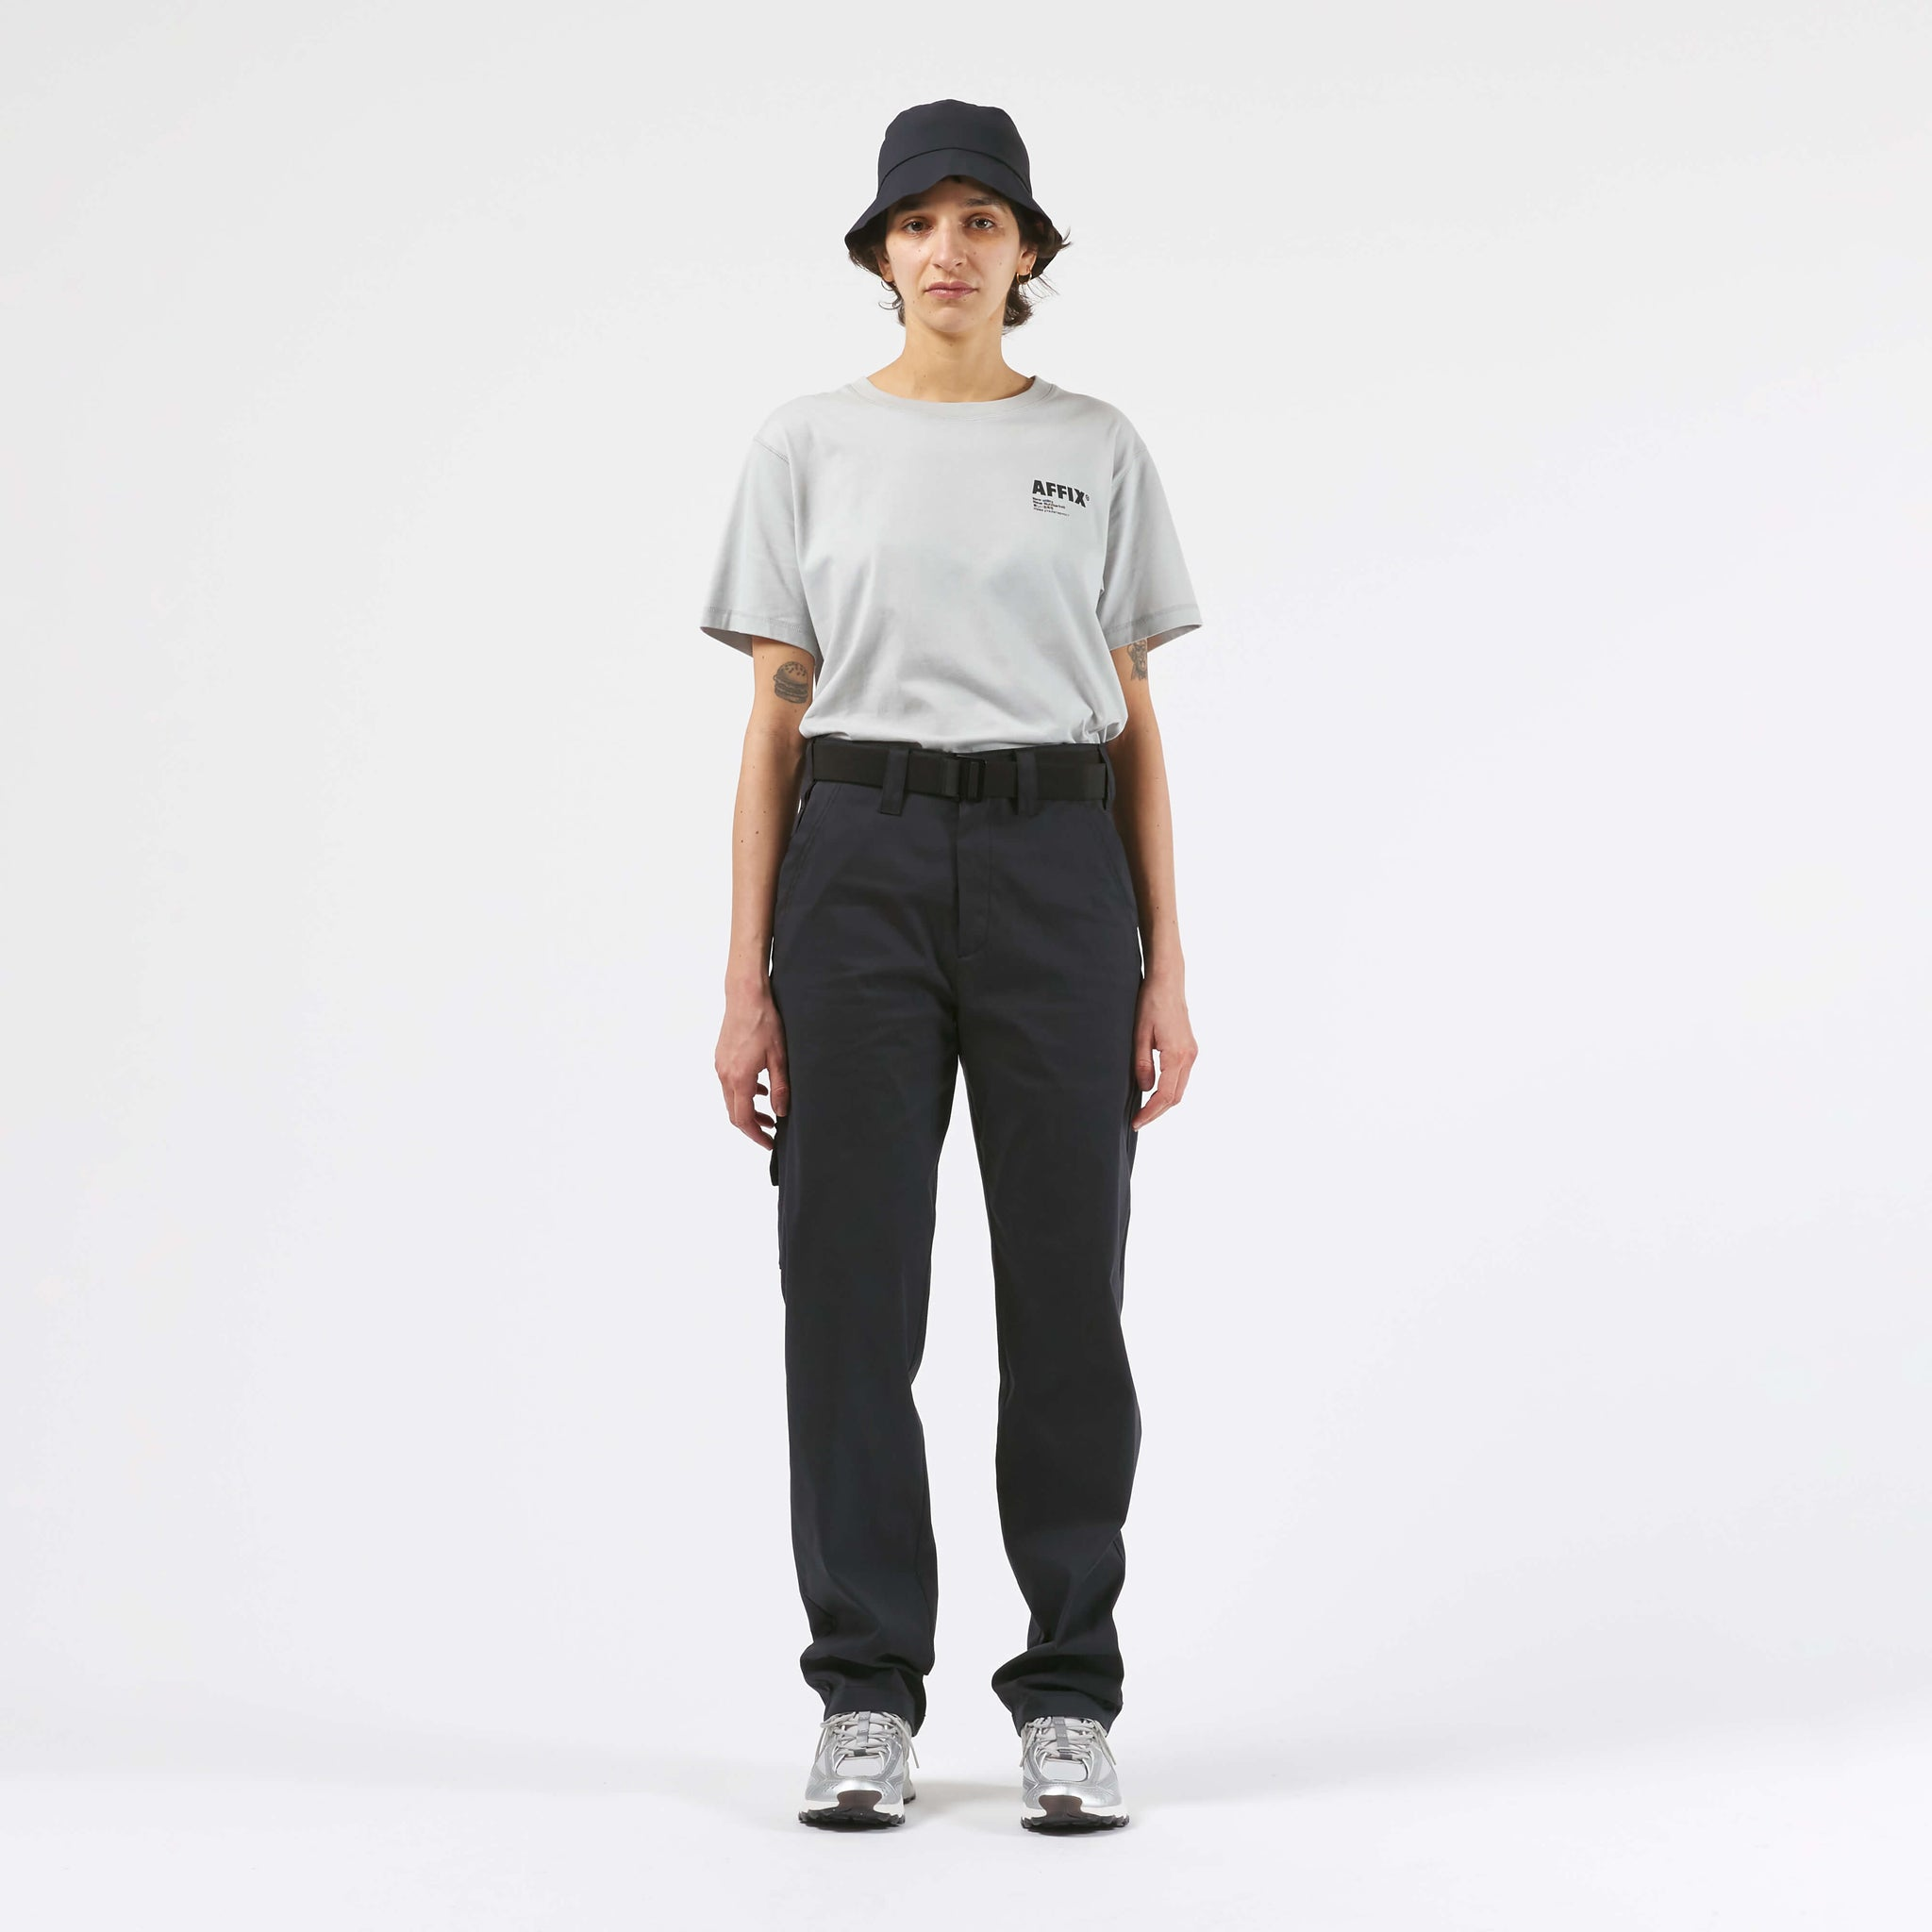 AFFX WRKS AFFIX WORKS UTILITY PANT BLACK EXCLUSIVE